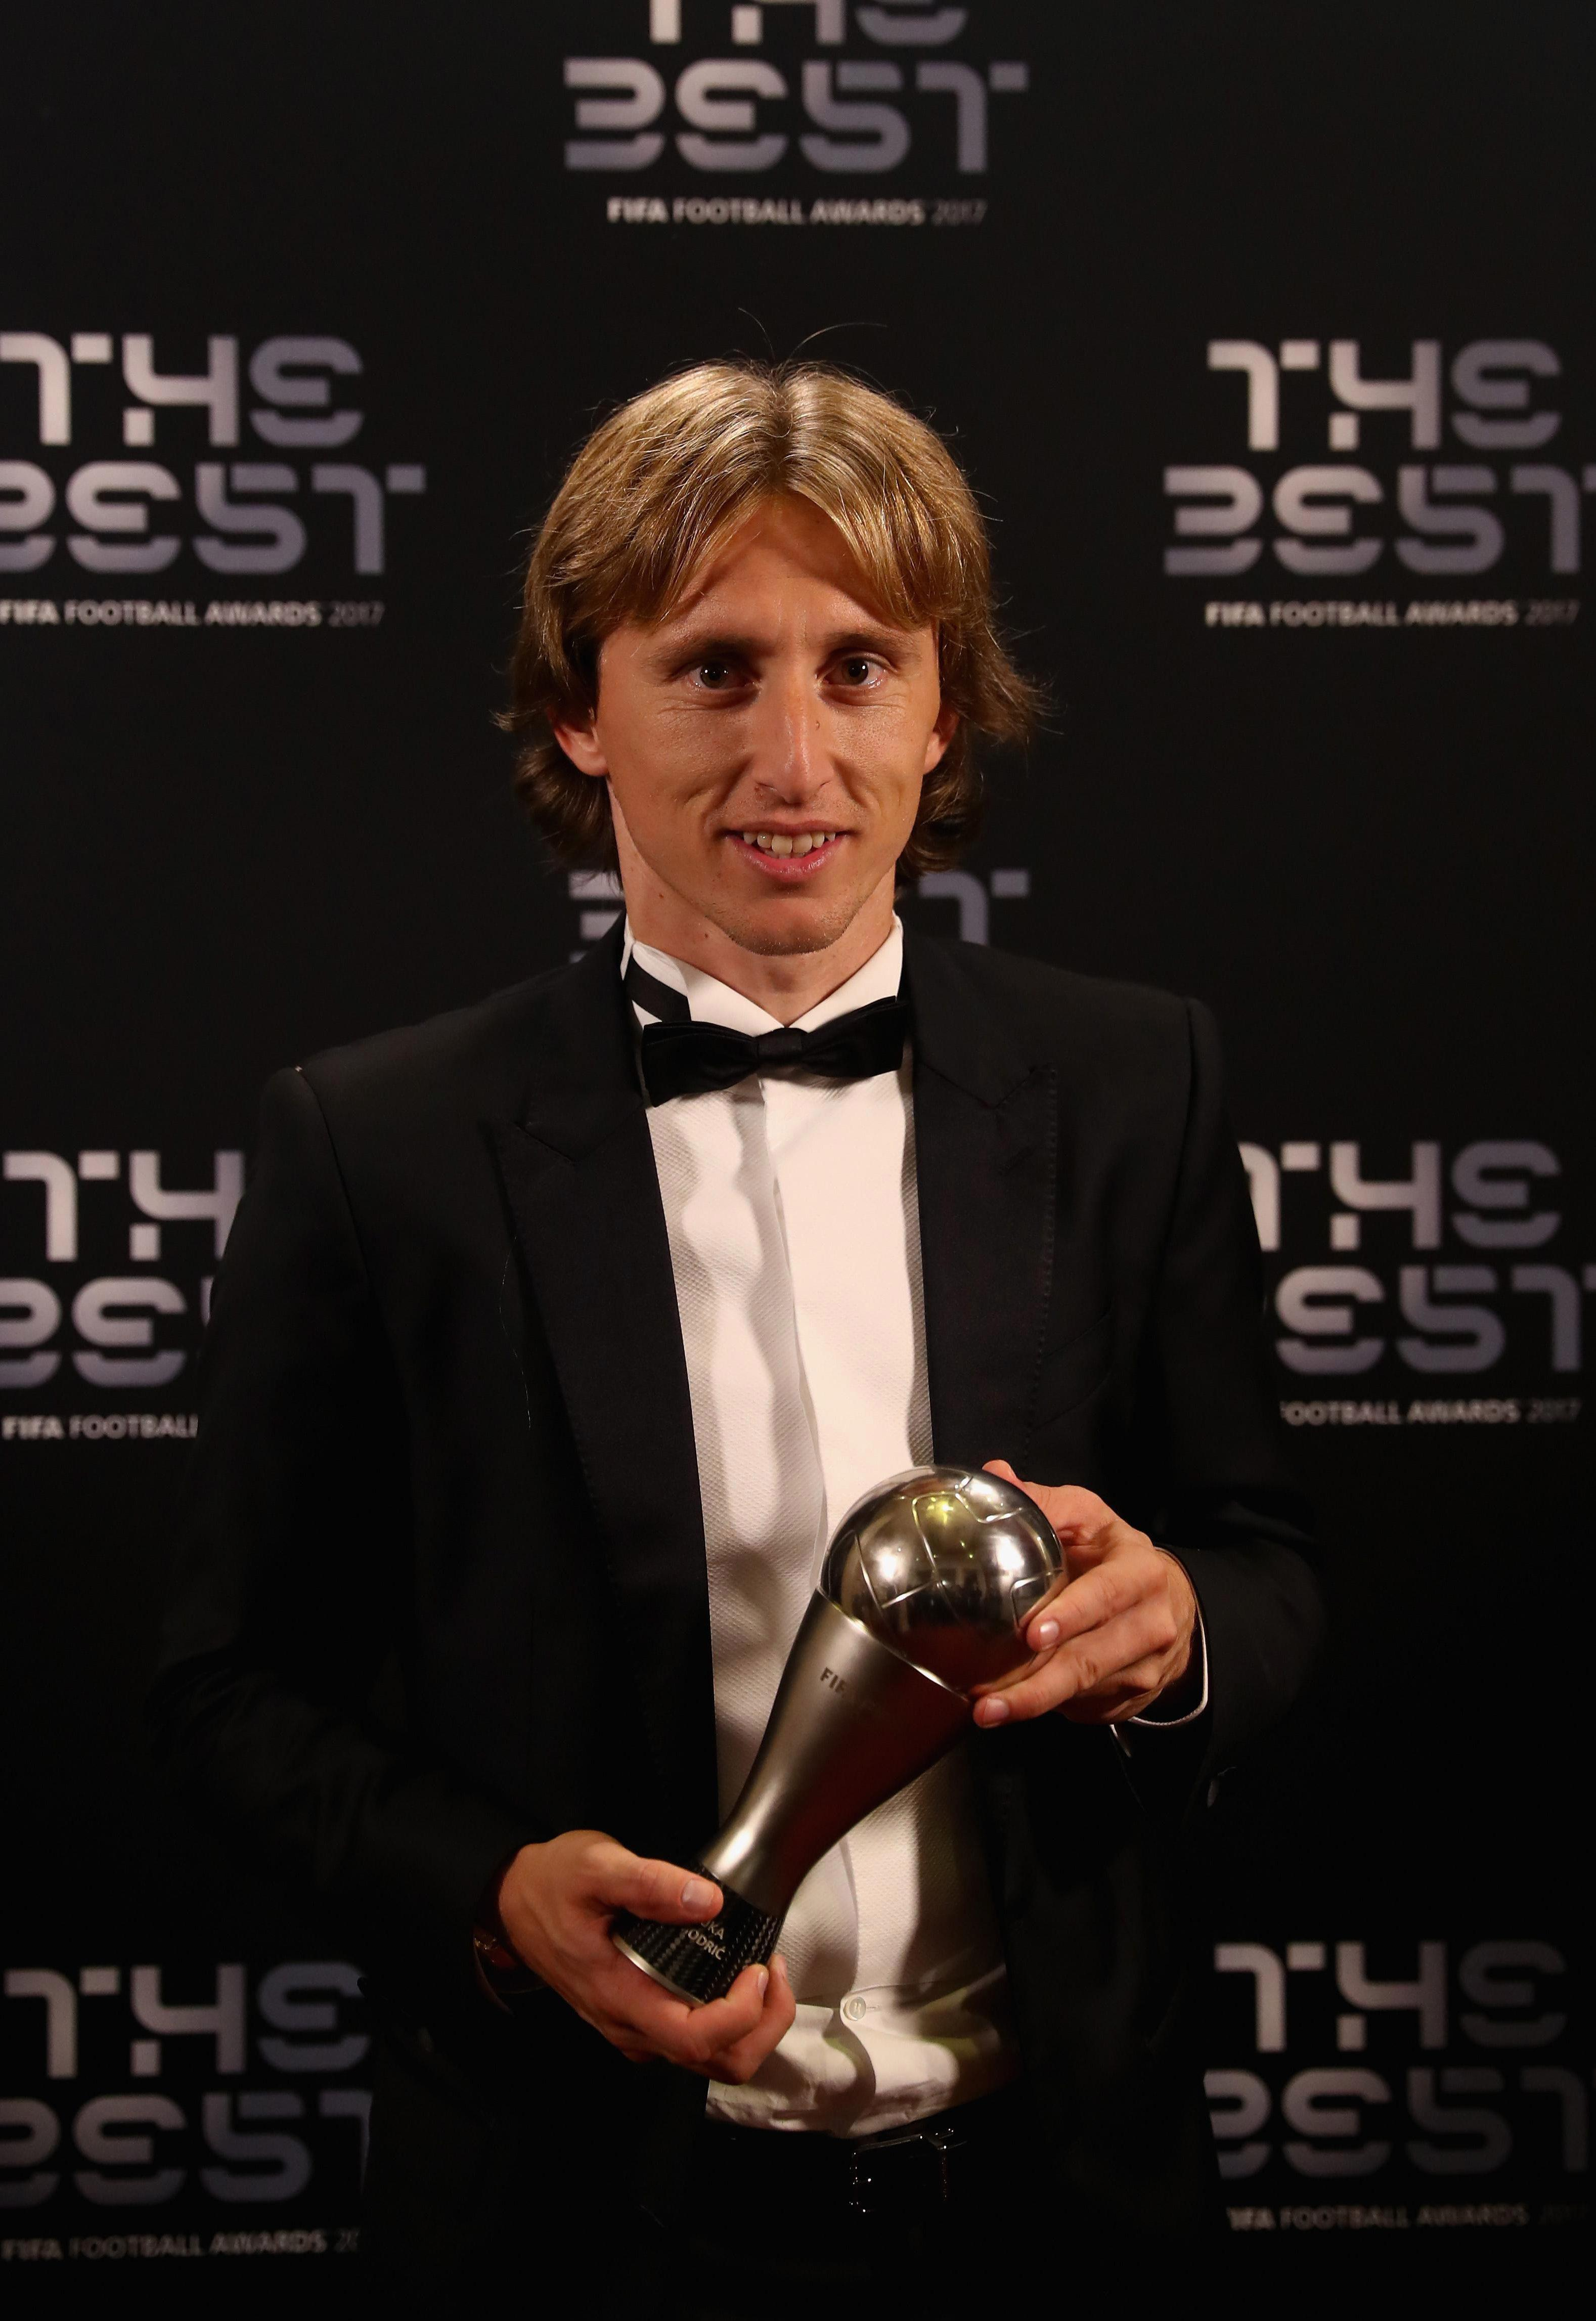 Modric may have to make a considerable payment to the government